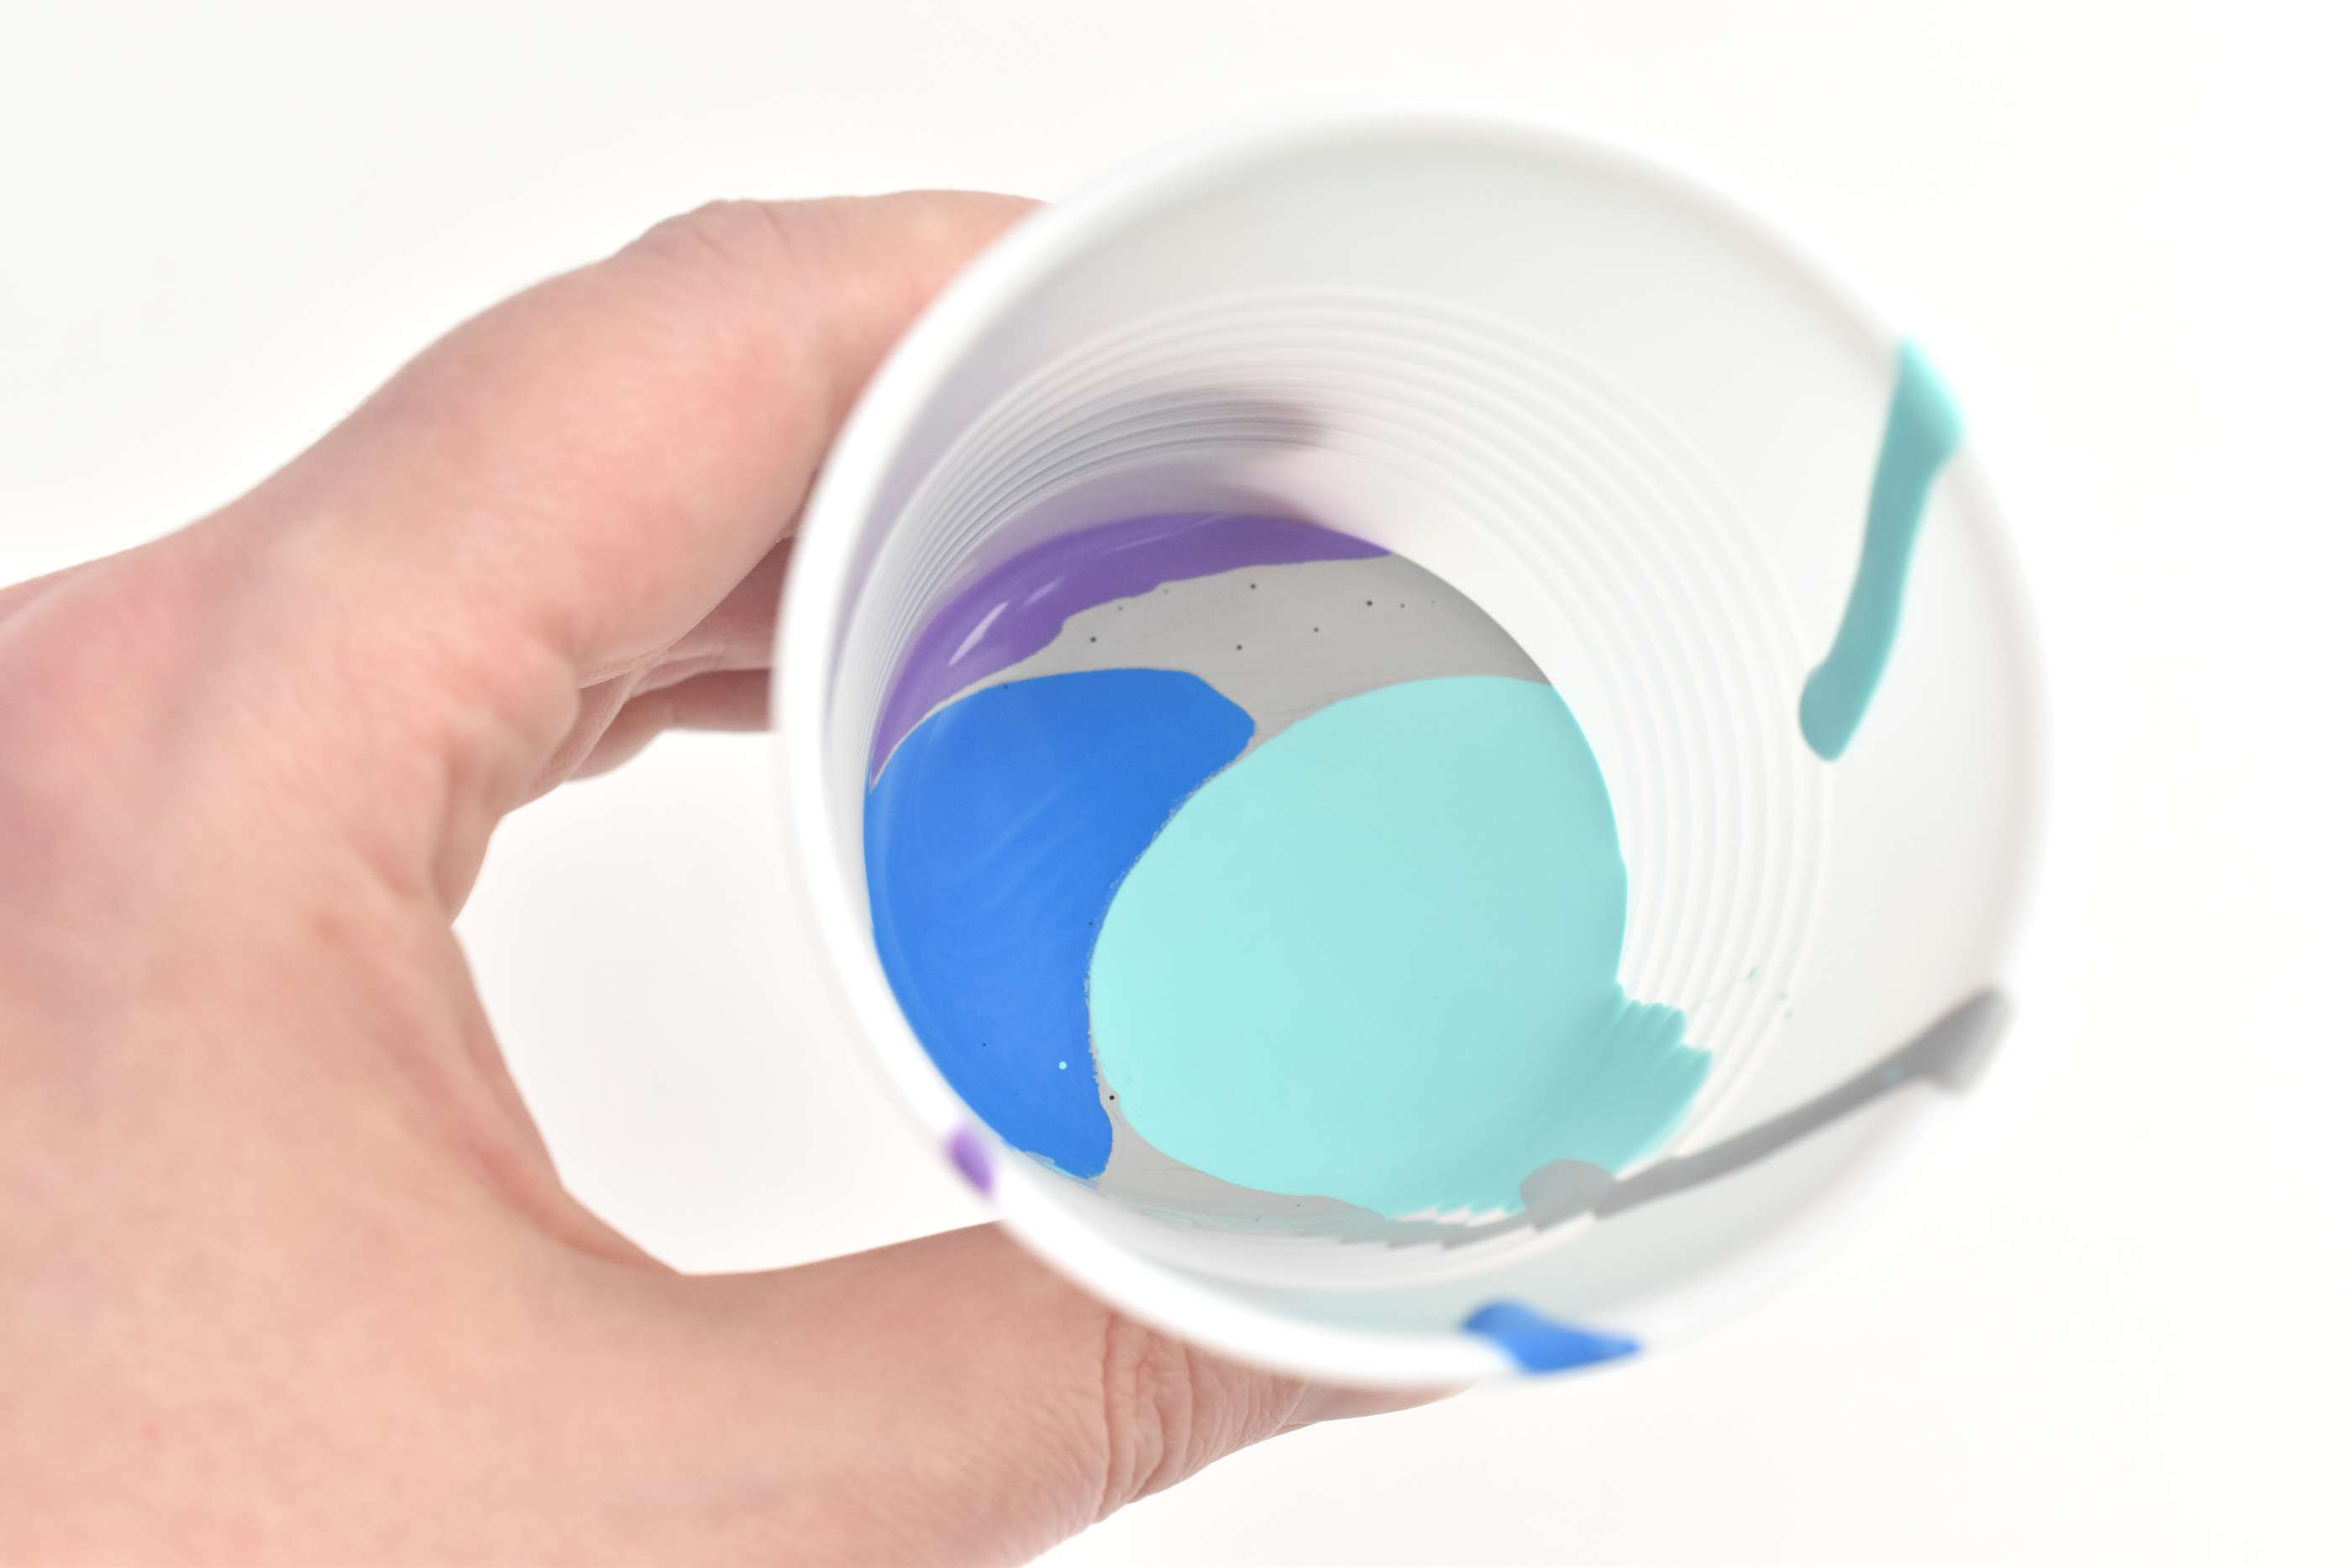 A hand holding a cup of aqua, blue, gray, and purple paint for pouring